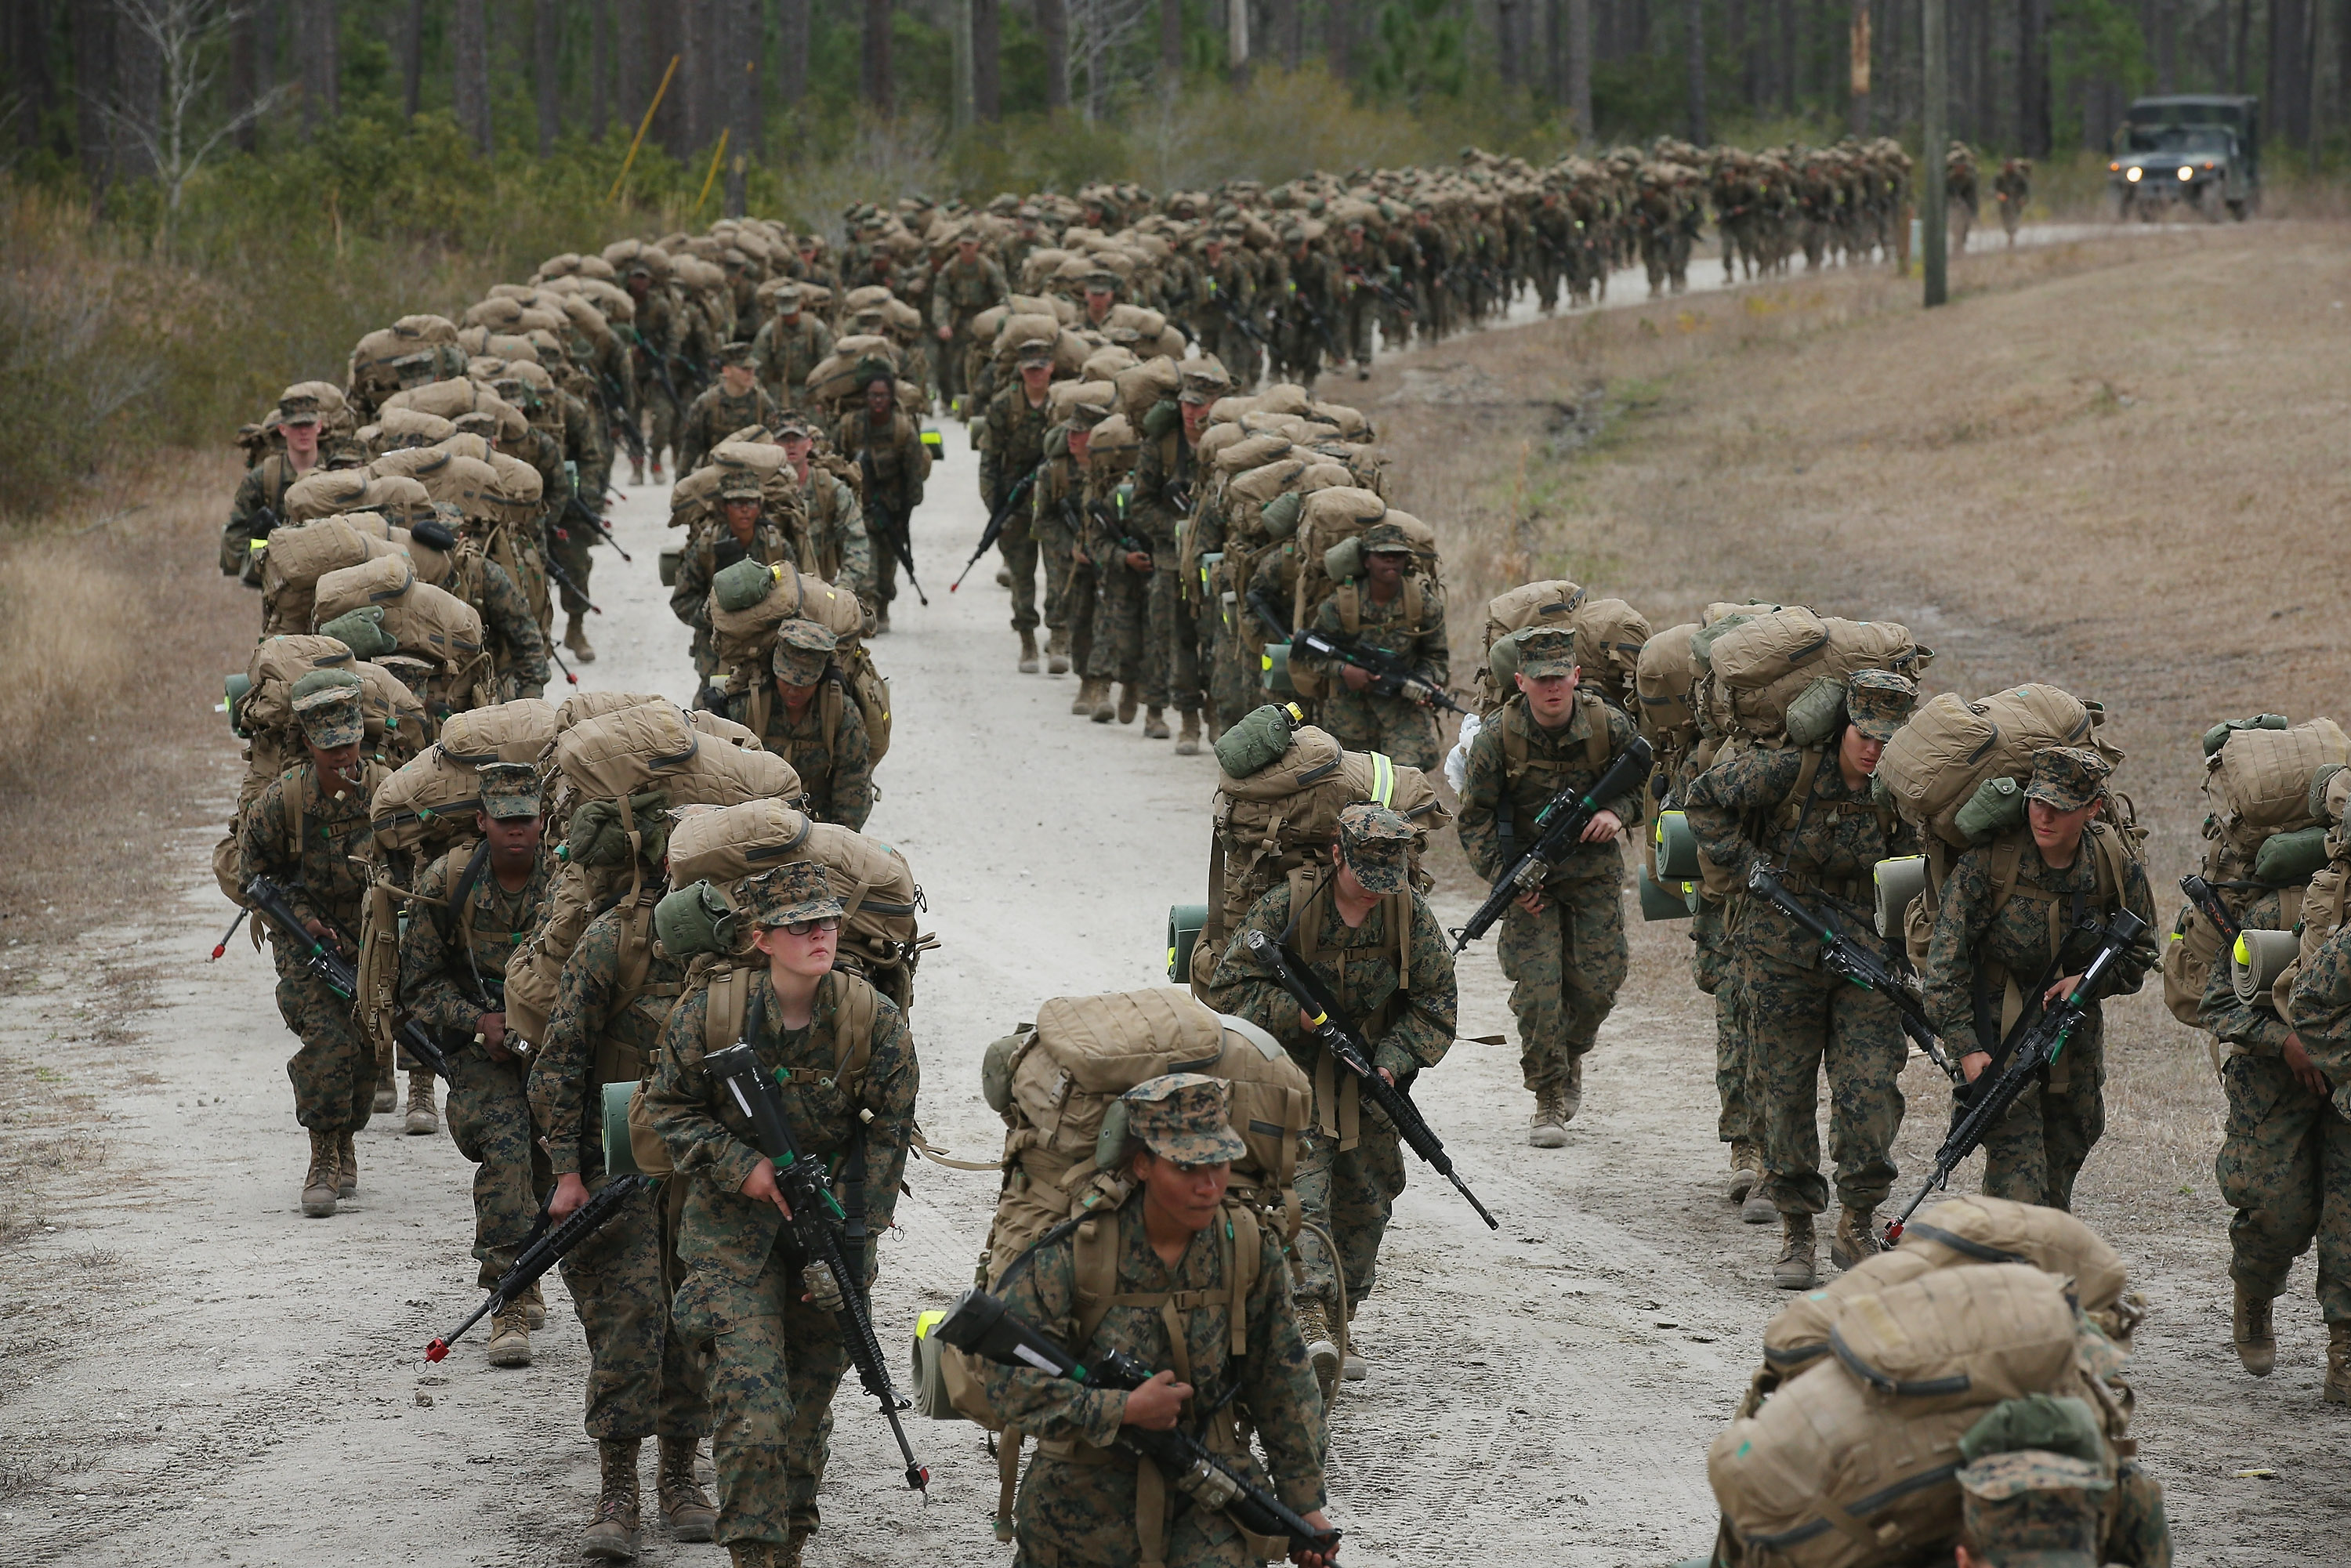 What Are The Crucible Requirements In Parris Island In